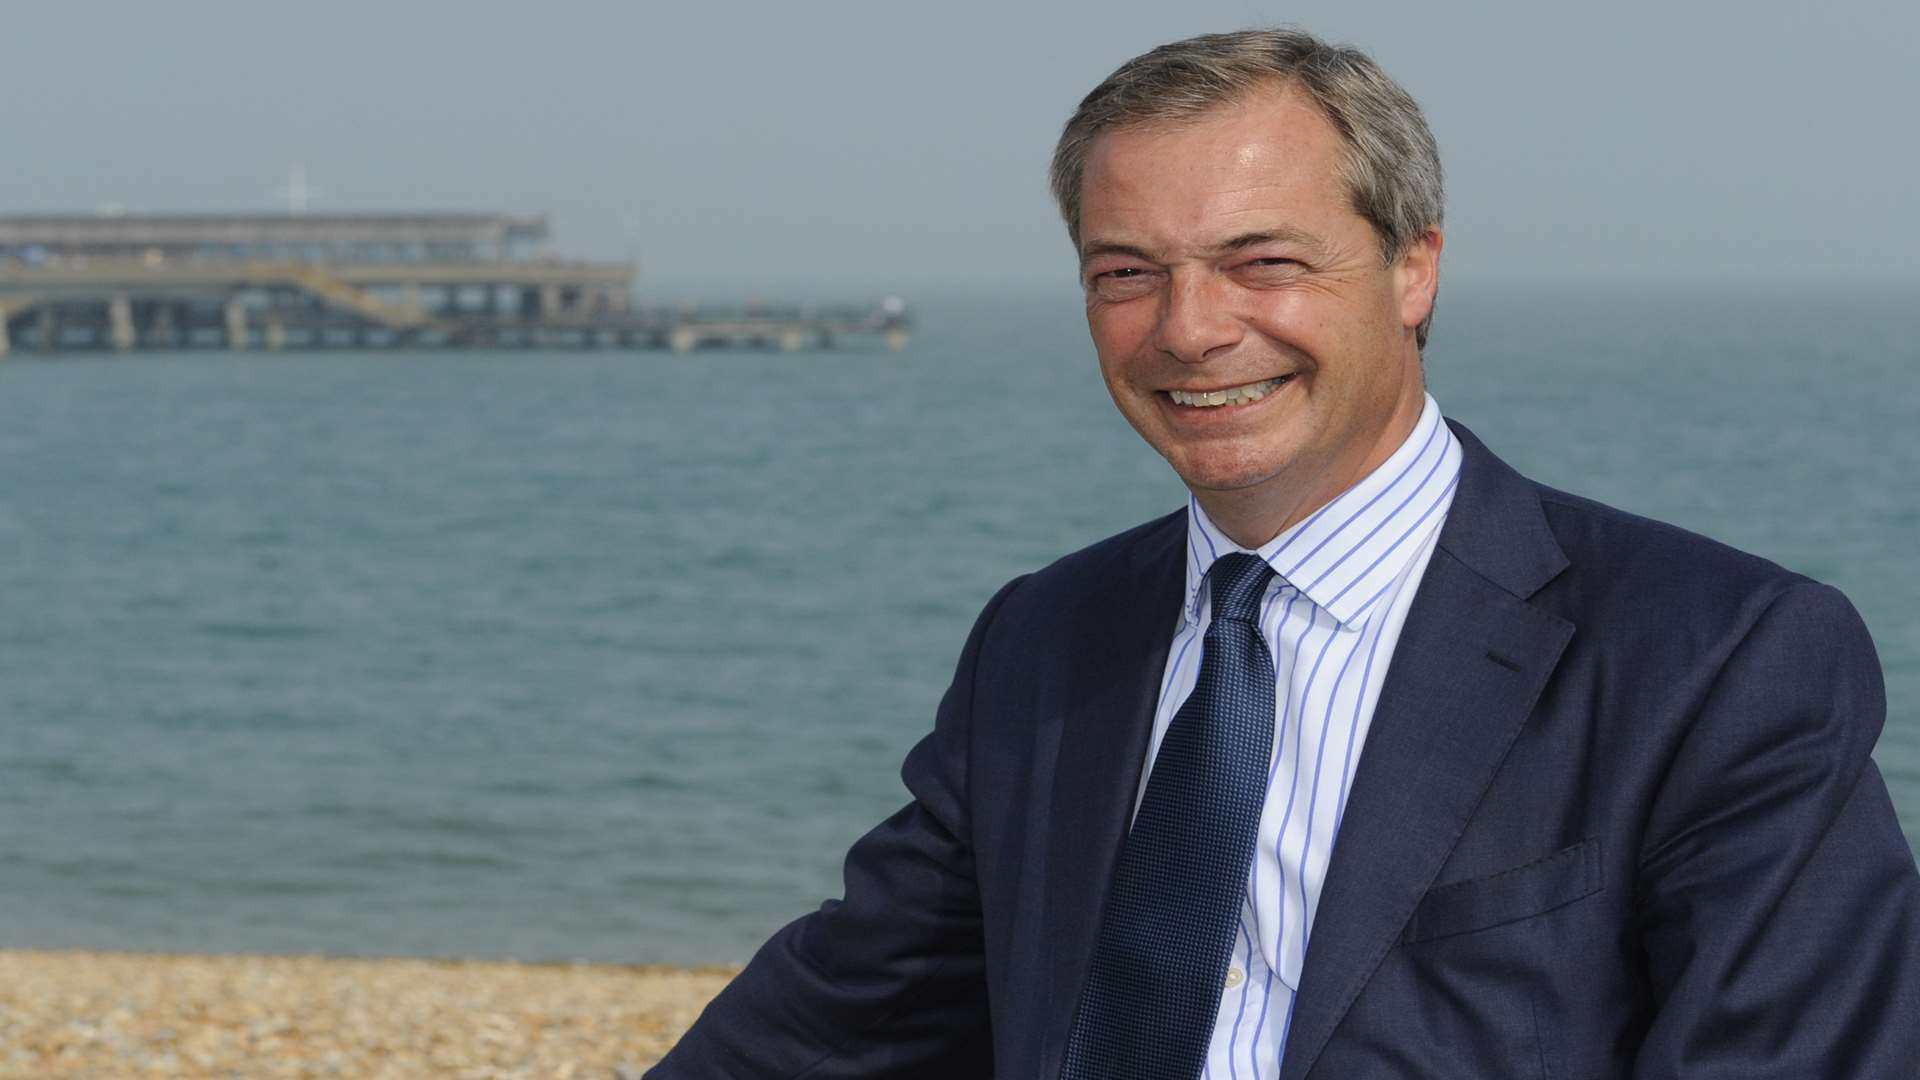 The former UKIP leader has confirmed he won't be standing for the South Thanet seat in June.